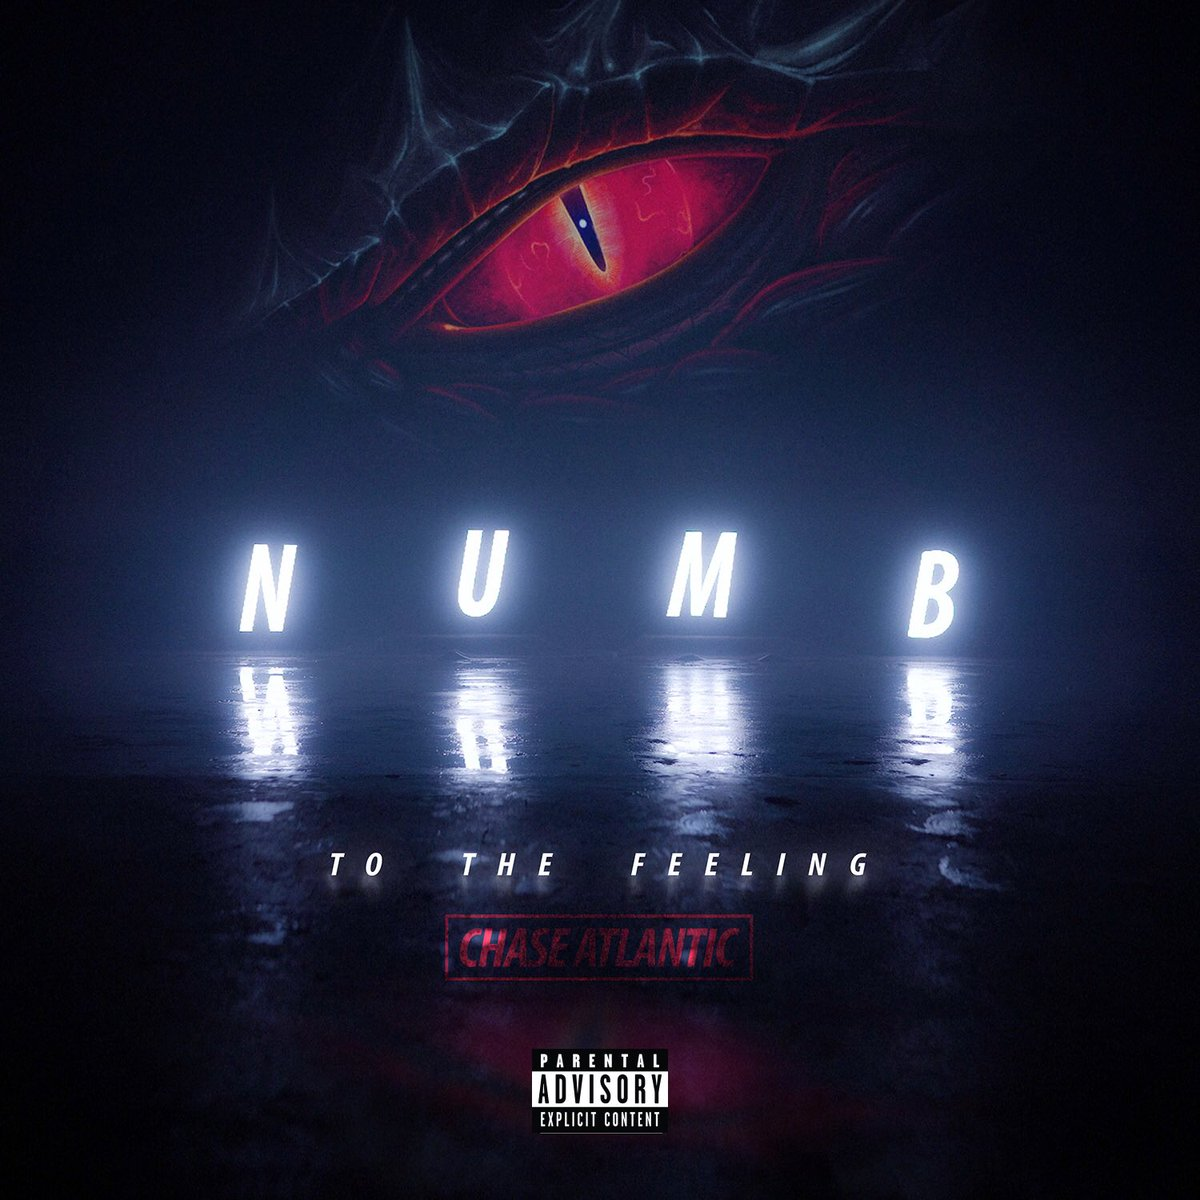 RT @ChaseAtlantic: NUMB TO THE FEELING OUT NOW  https://t.co/Eq1sB6xjFy https://t.co/mUJqw96RRI